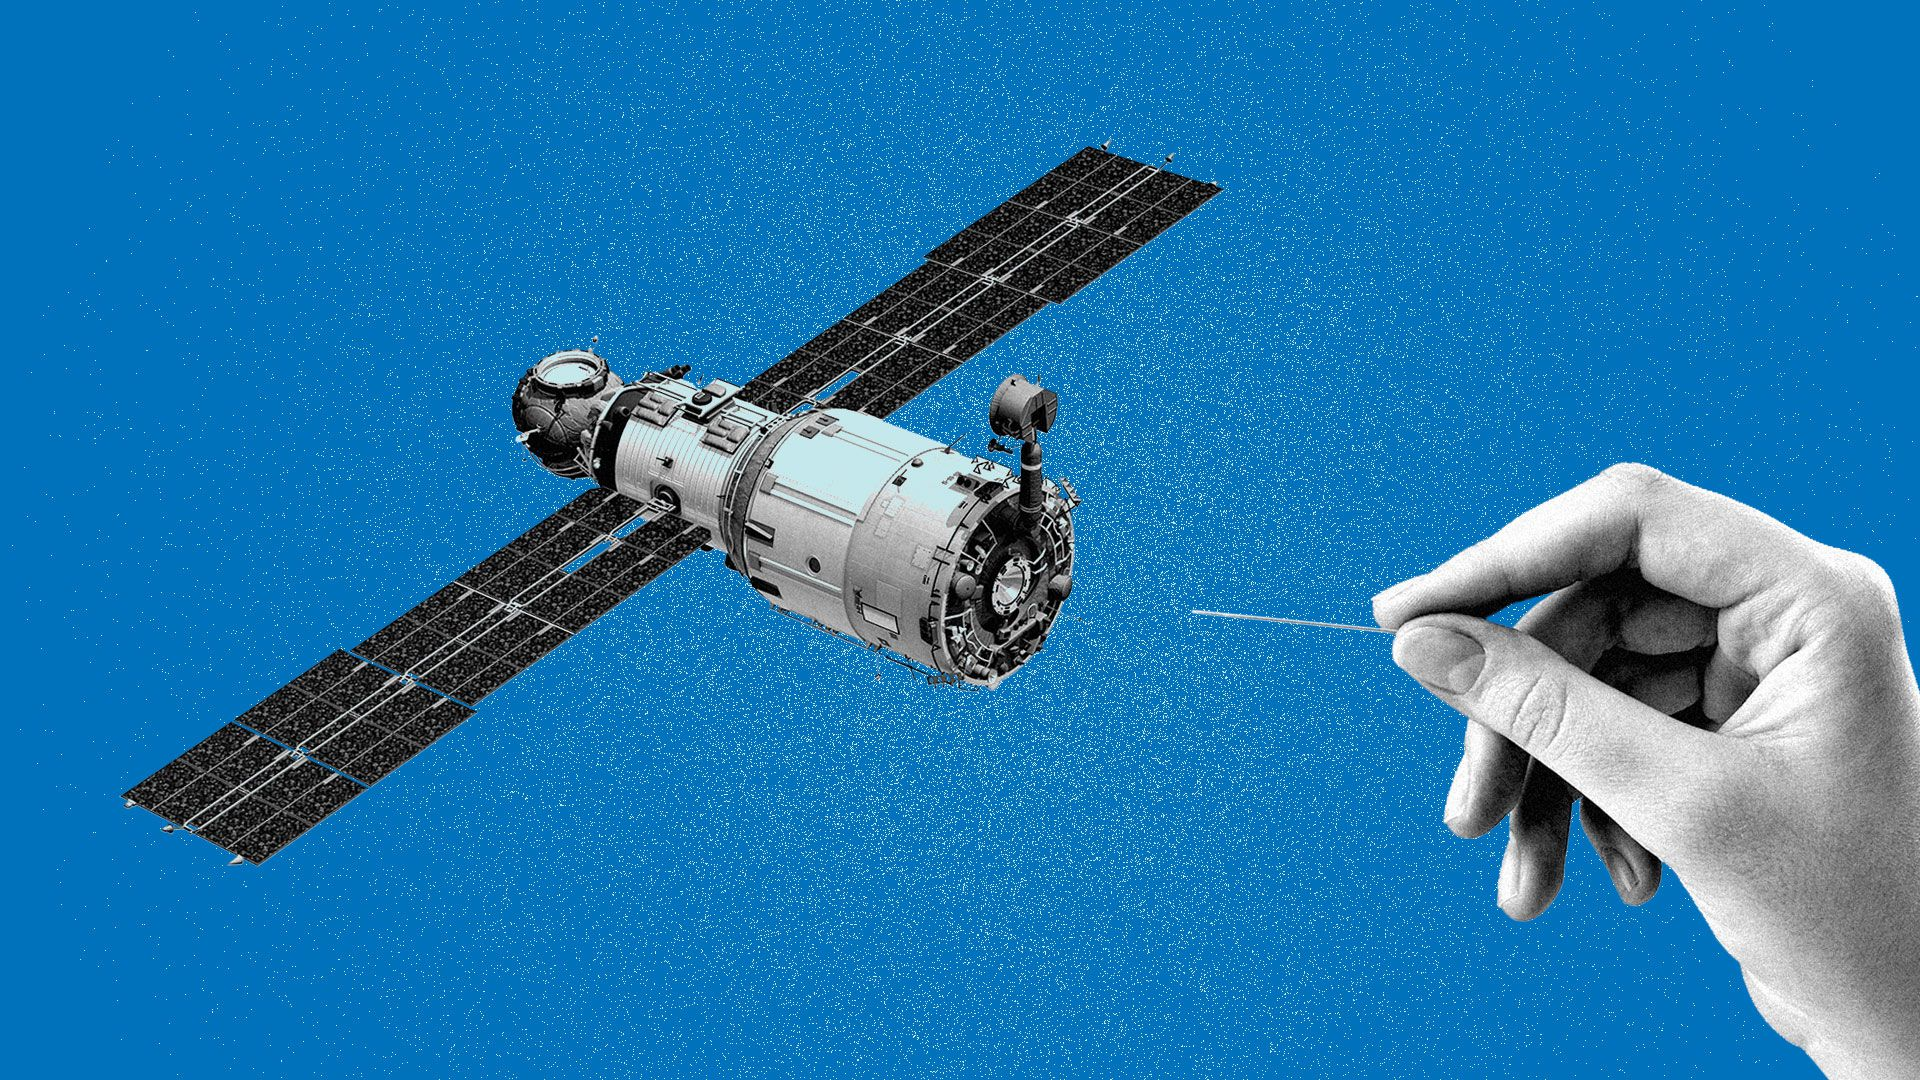 Illustration of an orbiting satellite about to be punctured by a pin.